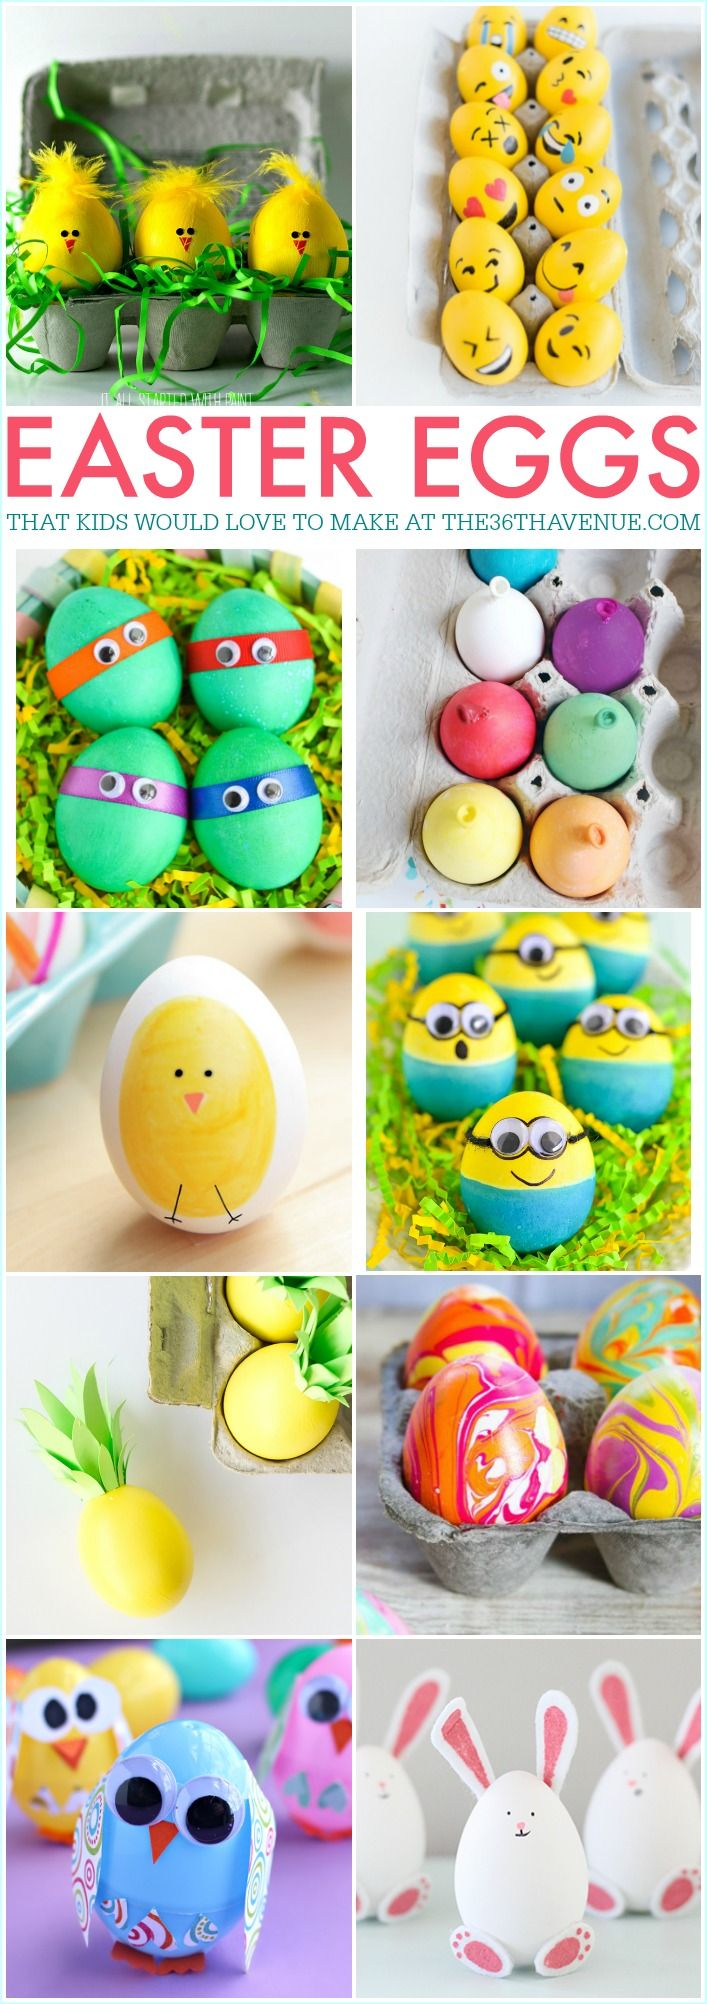 17 best images about everything easter on pinterest dove for Easter egg ideas